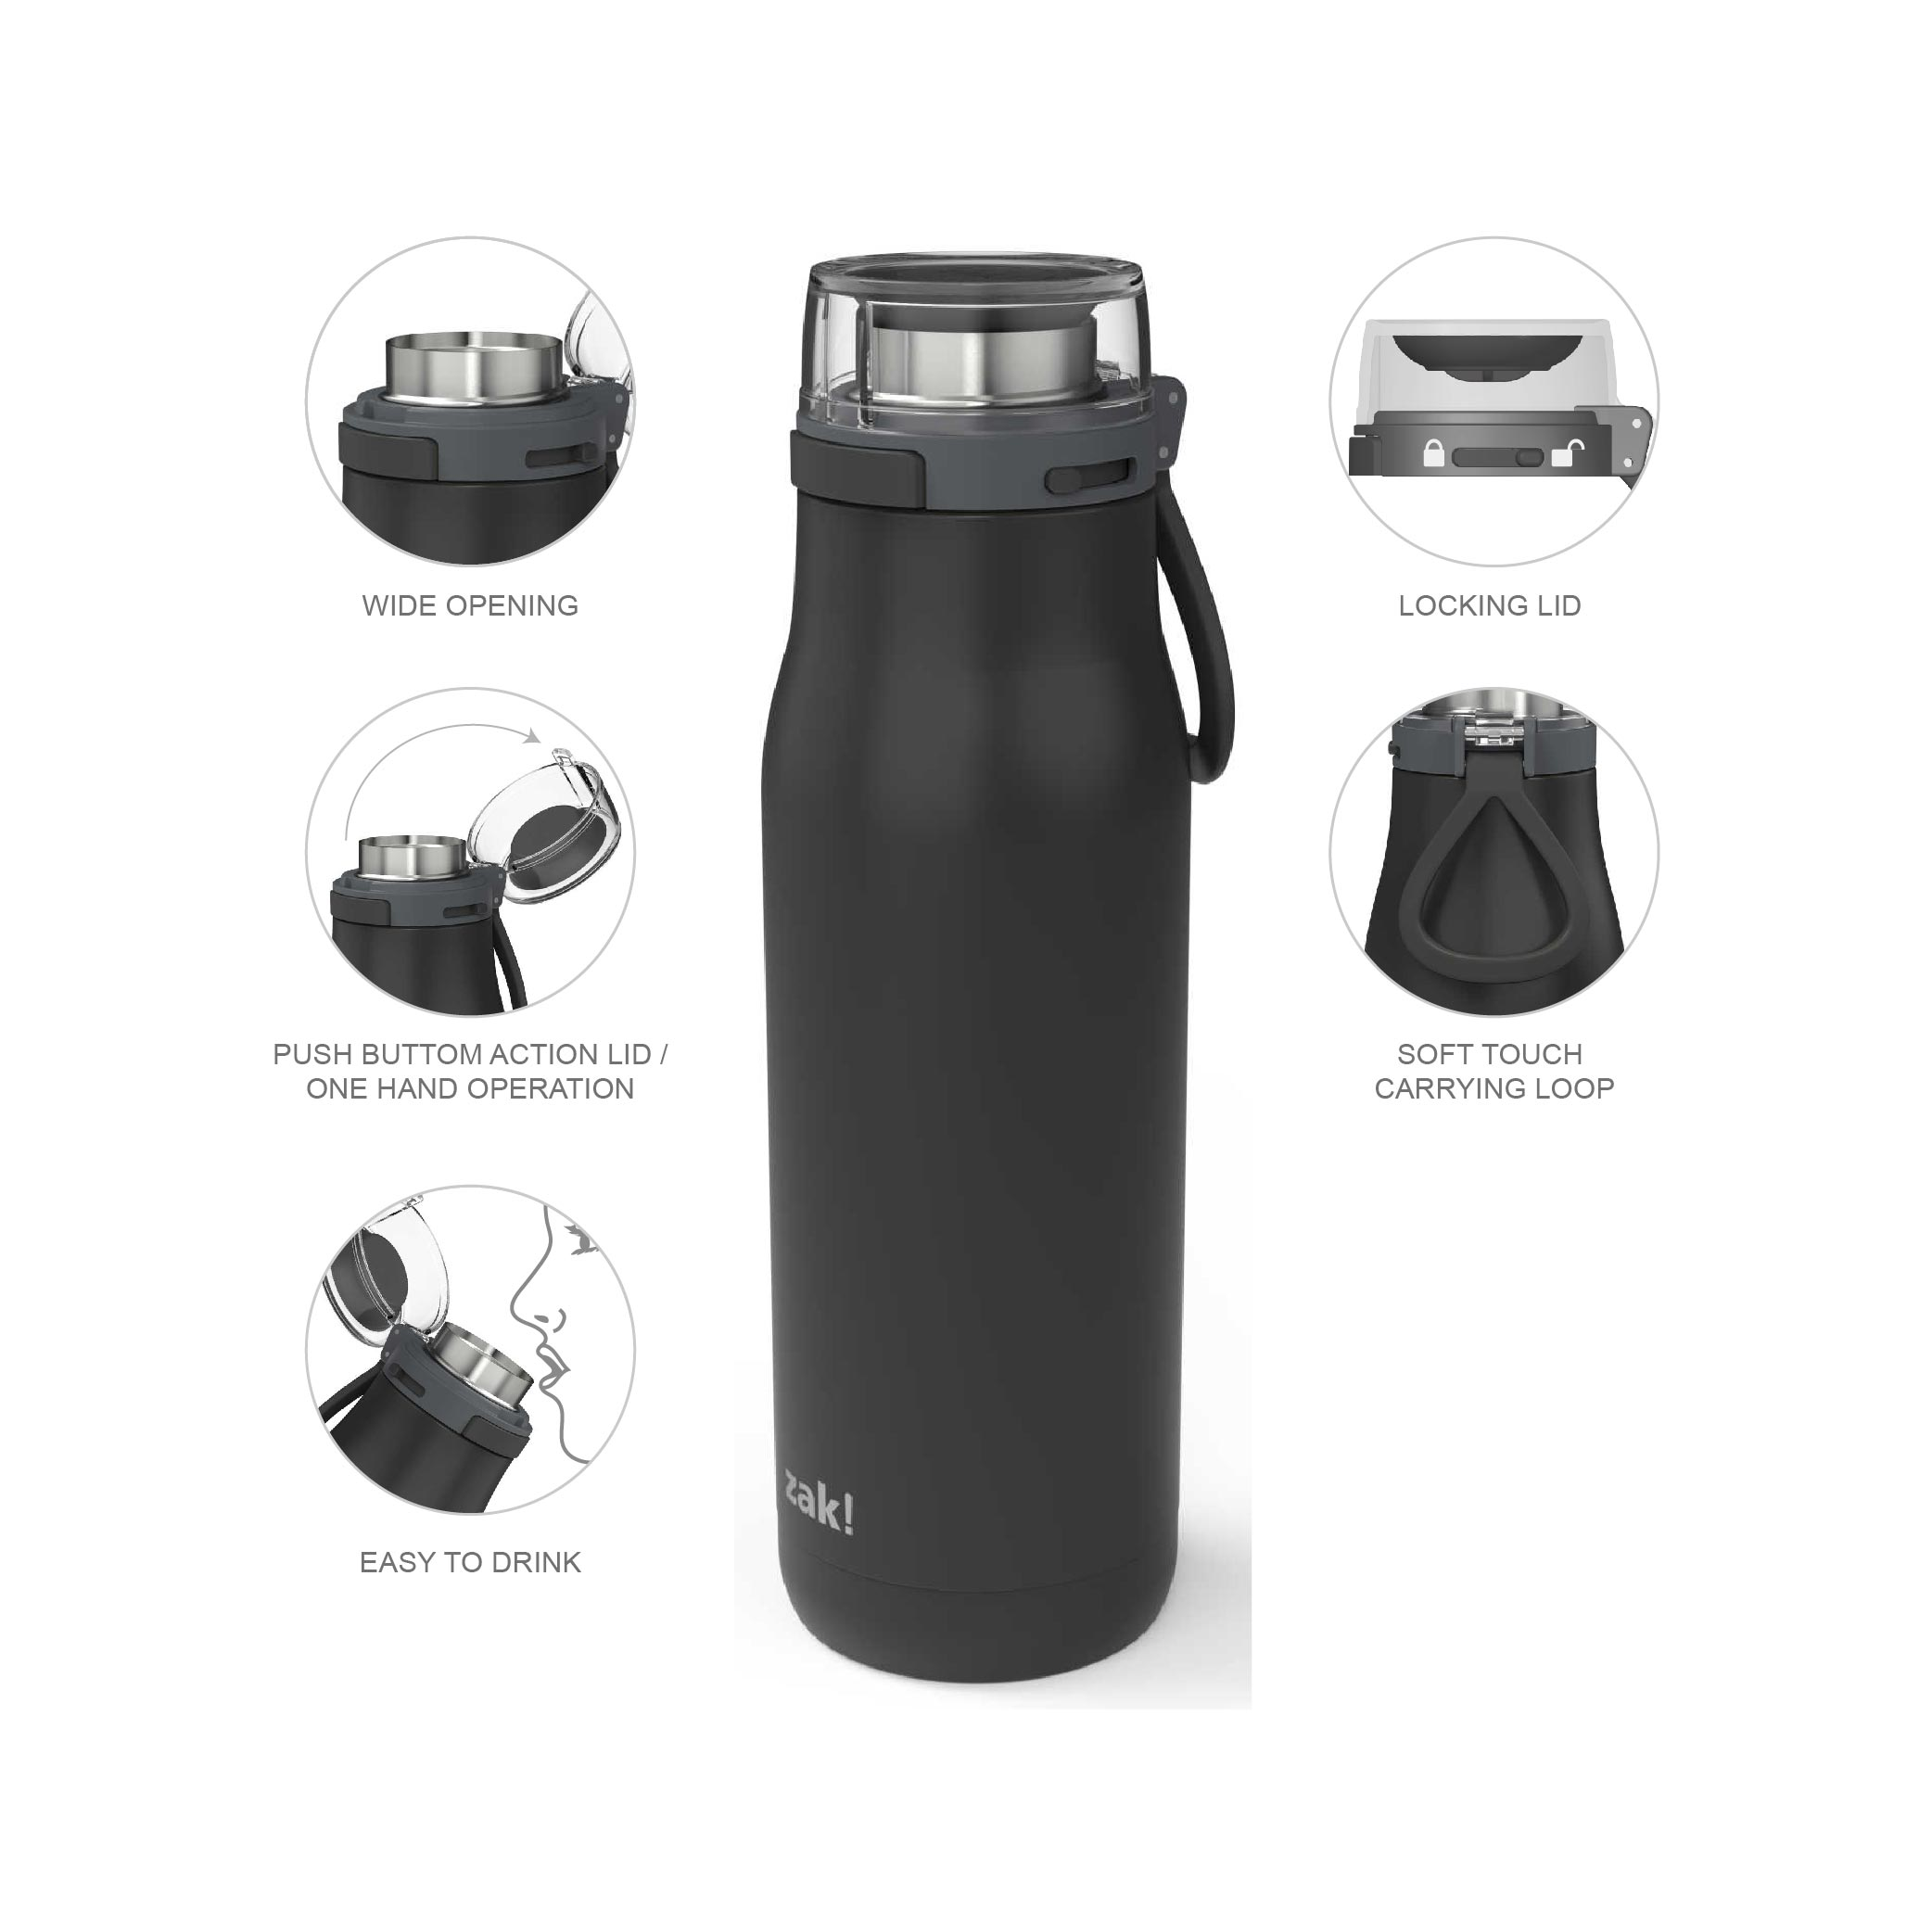 Kiona 20 ounce Vacuum Insulated Stainless Steel Tumbler, Charcoal slideshow image 6